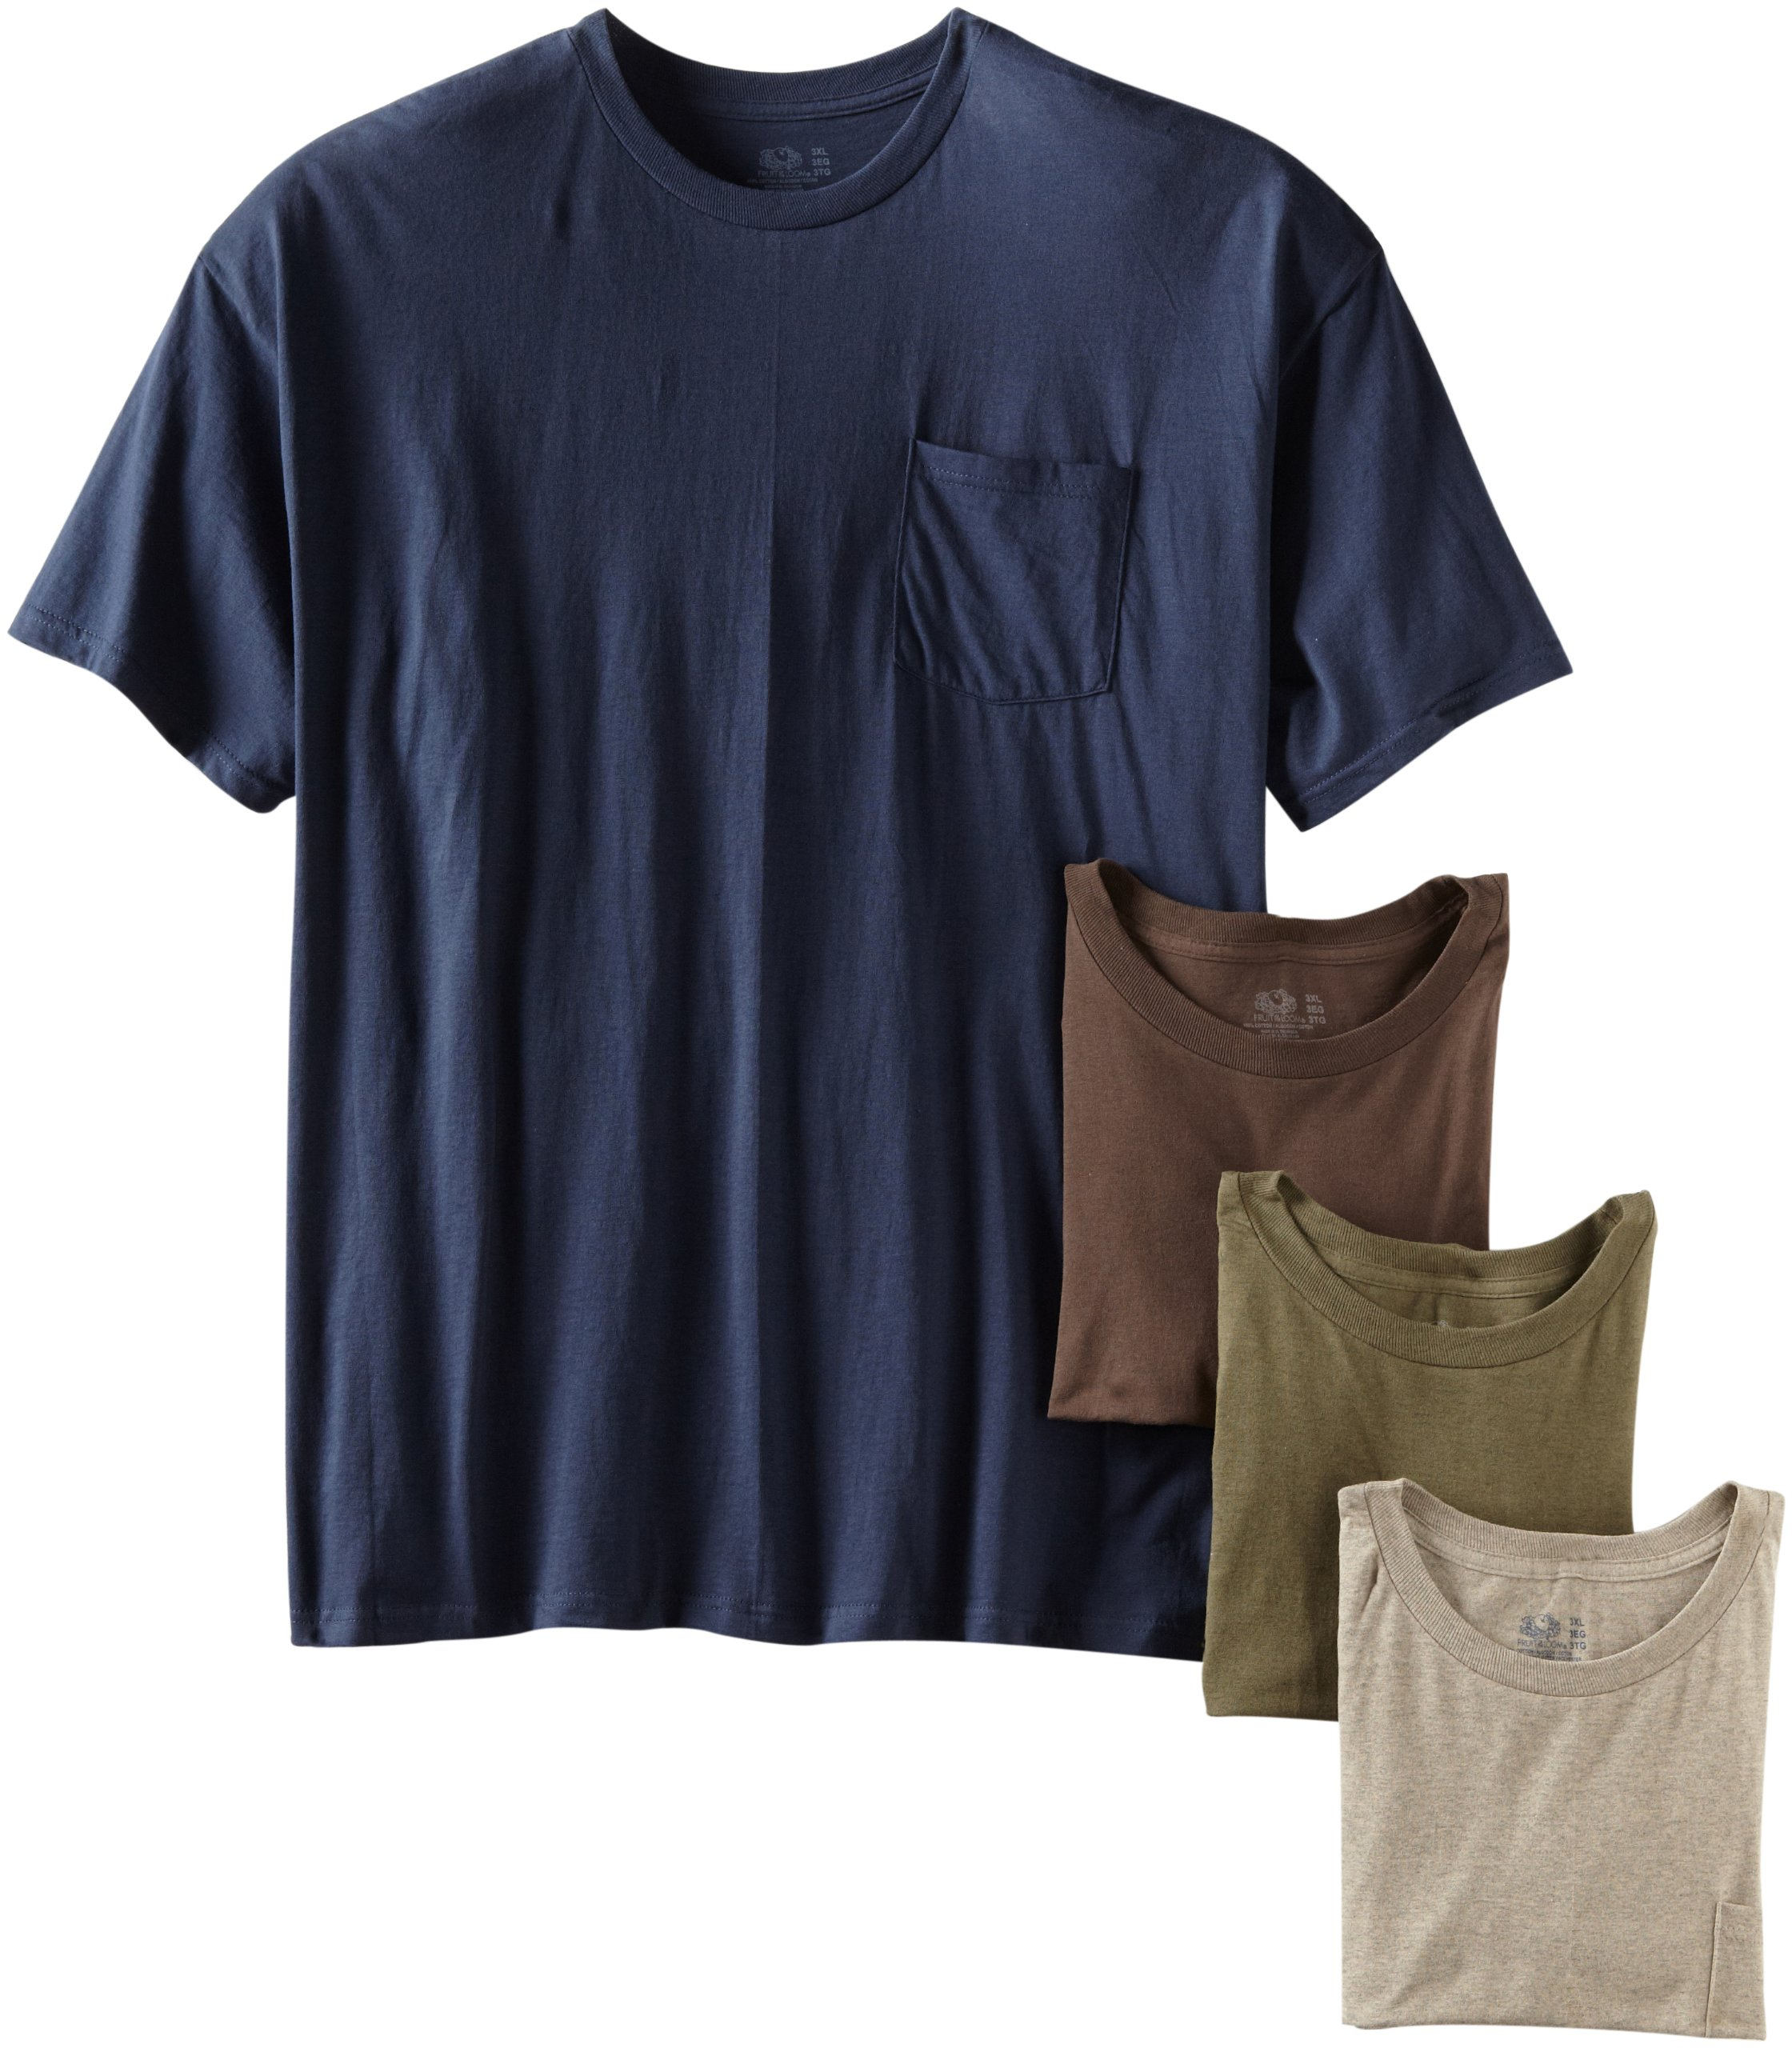 Fruit of the Loom Men's Pocket Crew Neck T-Shirt - X-Large - Assorted Earth Tones (Pack of 4)